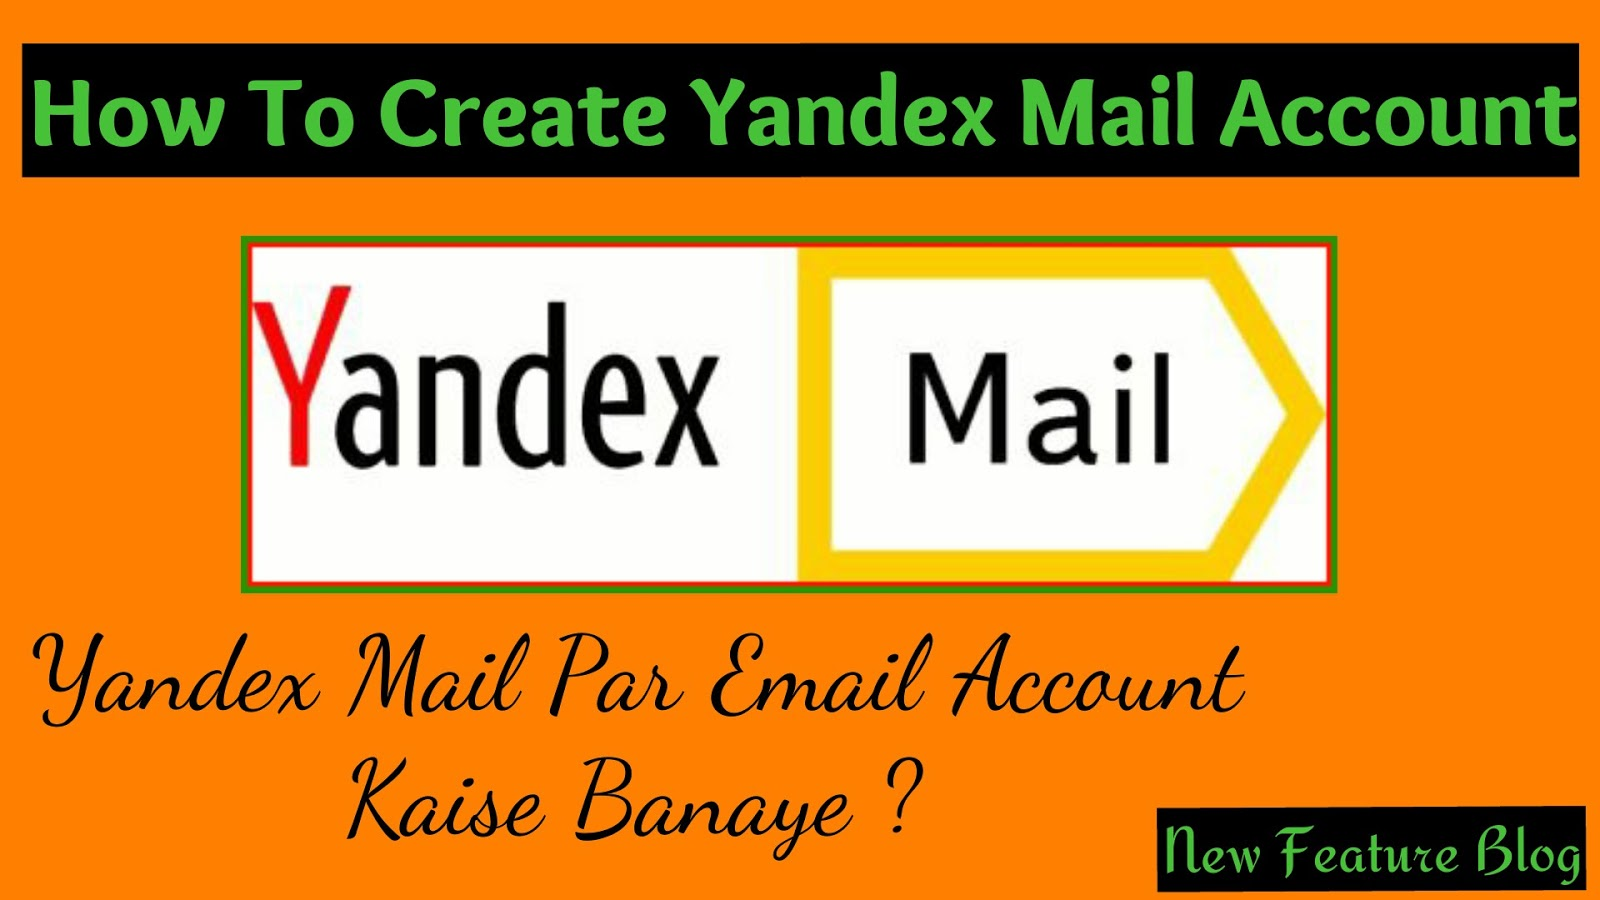 Yandex mail par account kaise banaye